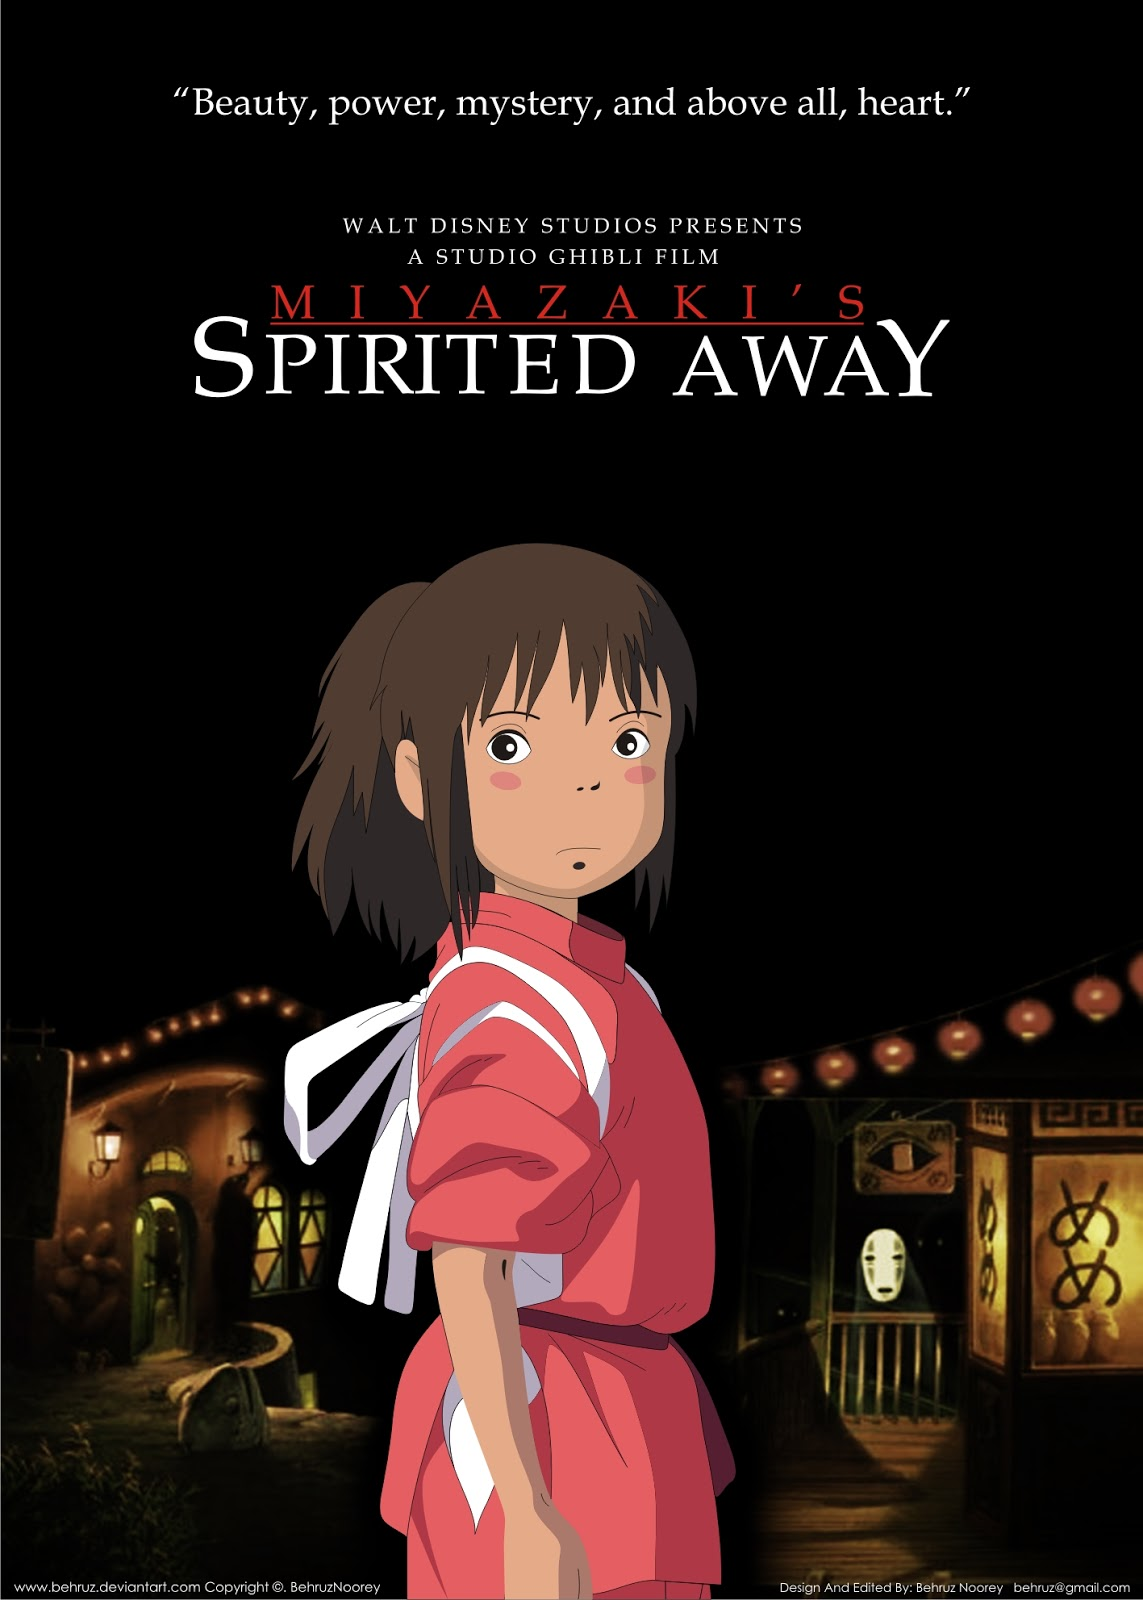 spirited away movie review Spirited away review by rob blackwelder maybe i just don't get anime i've  been trying for years, and several movies from this often-mythological genre of.